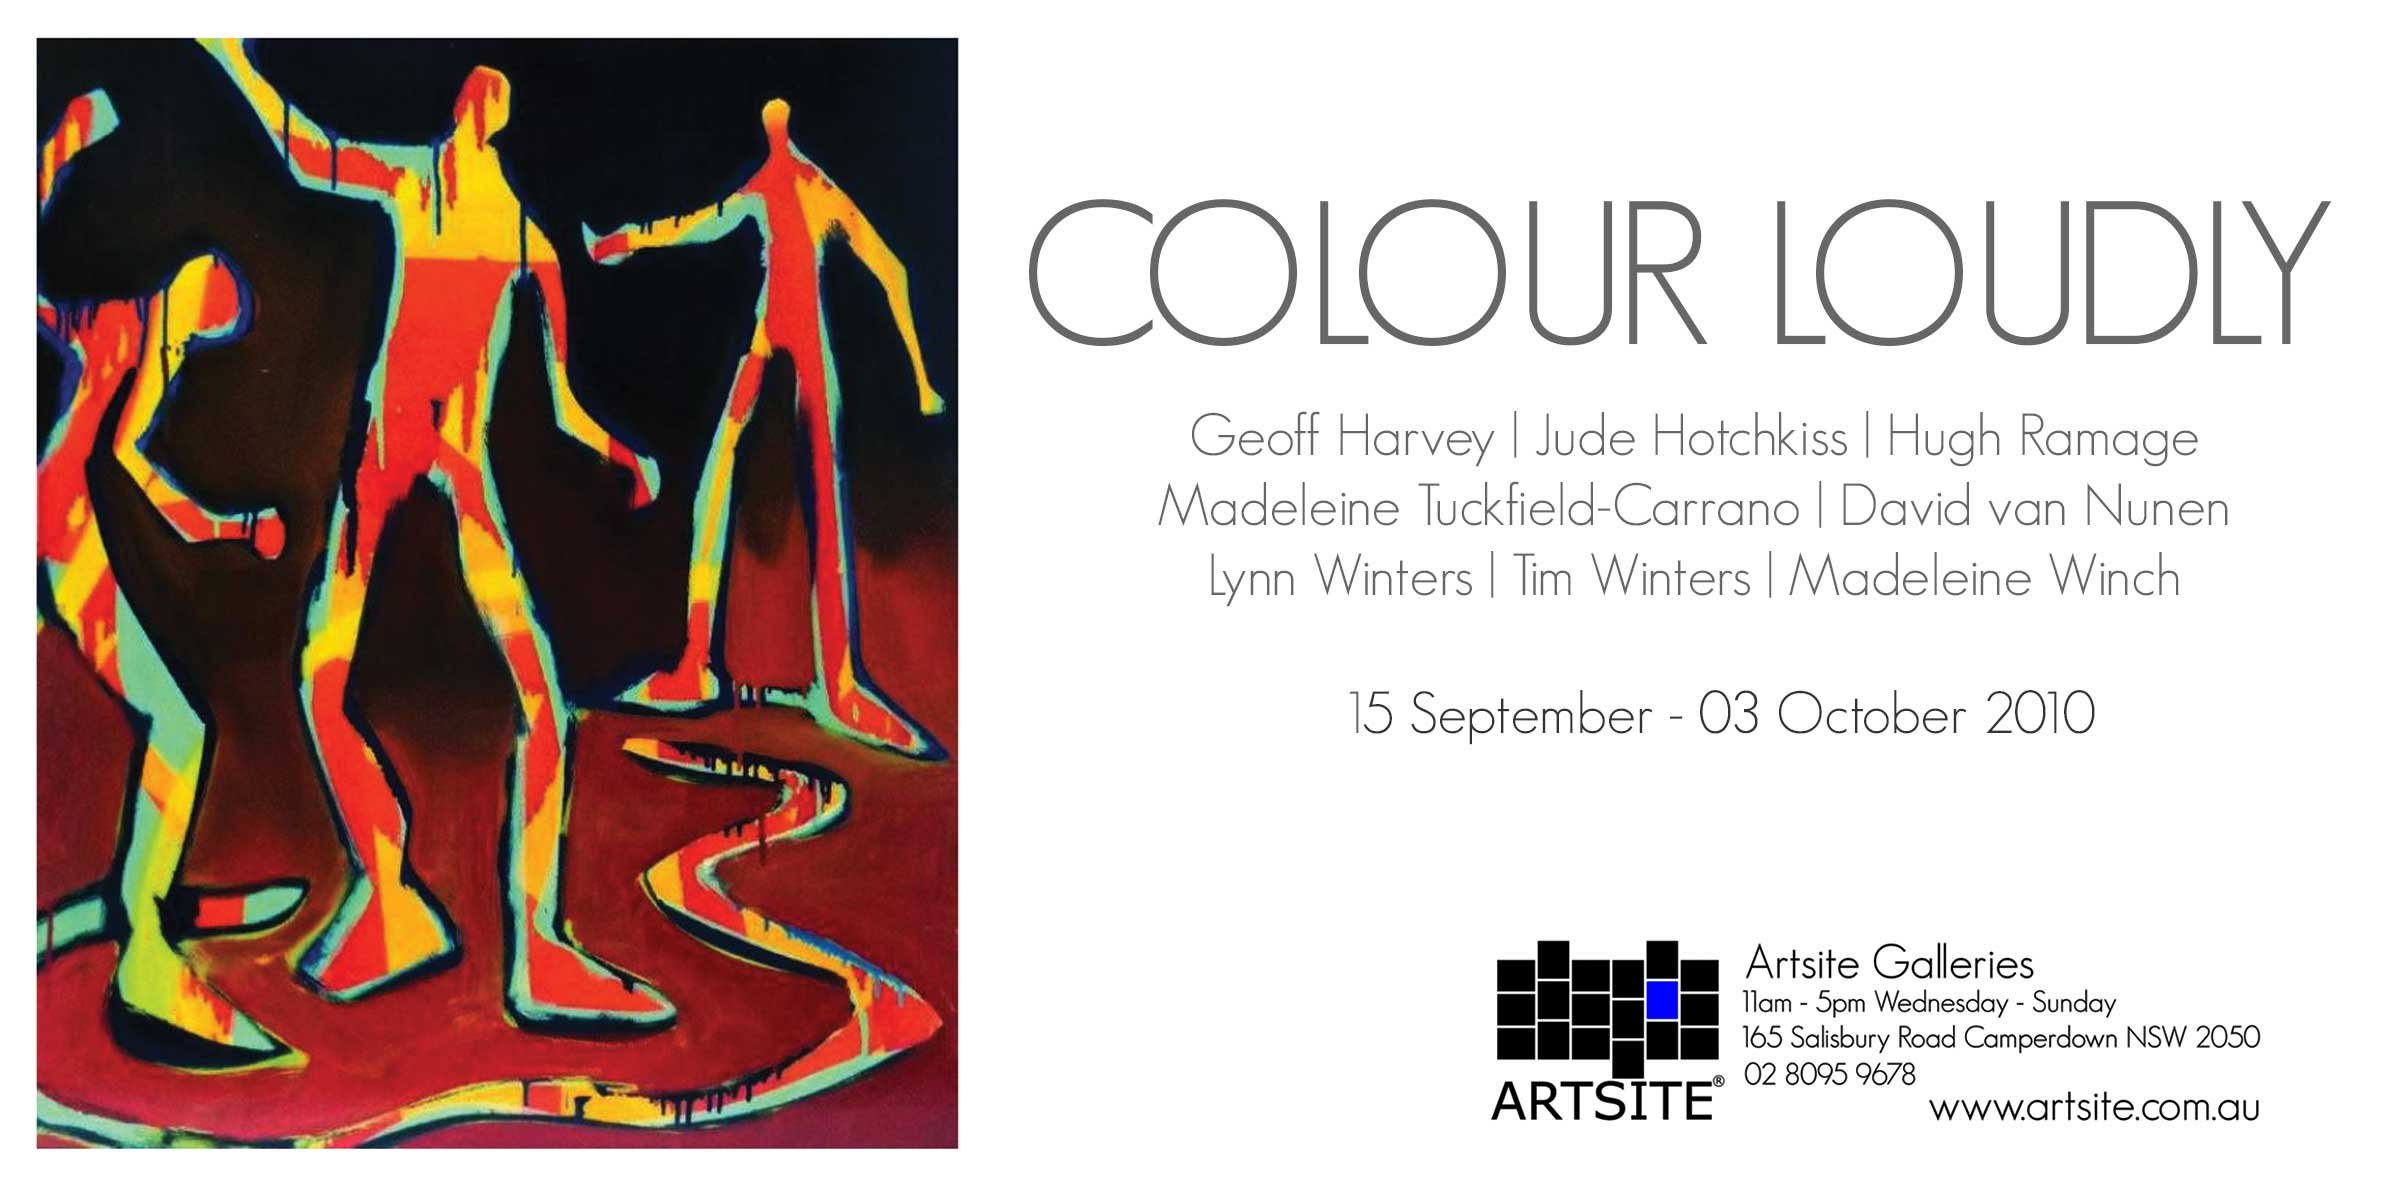 COLOUR LOUDLY, Artsite Gallery, 18 September - 03 October 2010 with artists: Geoff Harvey | Jude Hotchkiss | Hugh Ramage | Madeleine Tuckfield-Carrano | David van Nunen | Lynn Winters | Tim Winters | Madeleine Winch